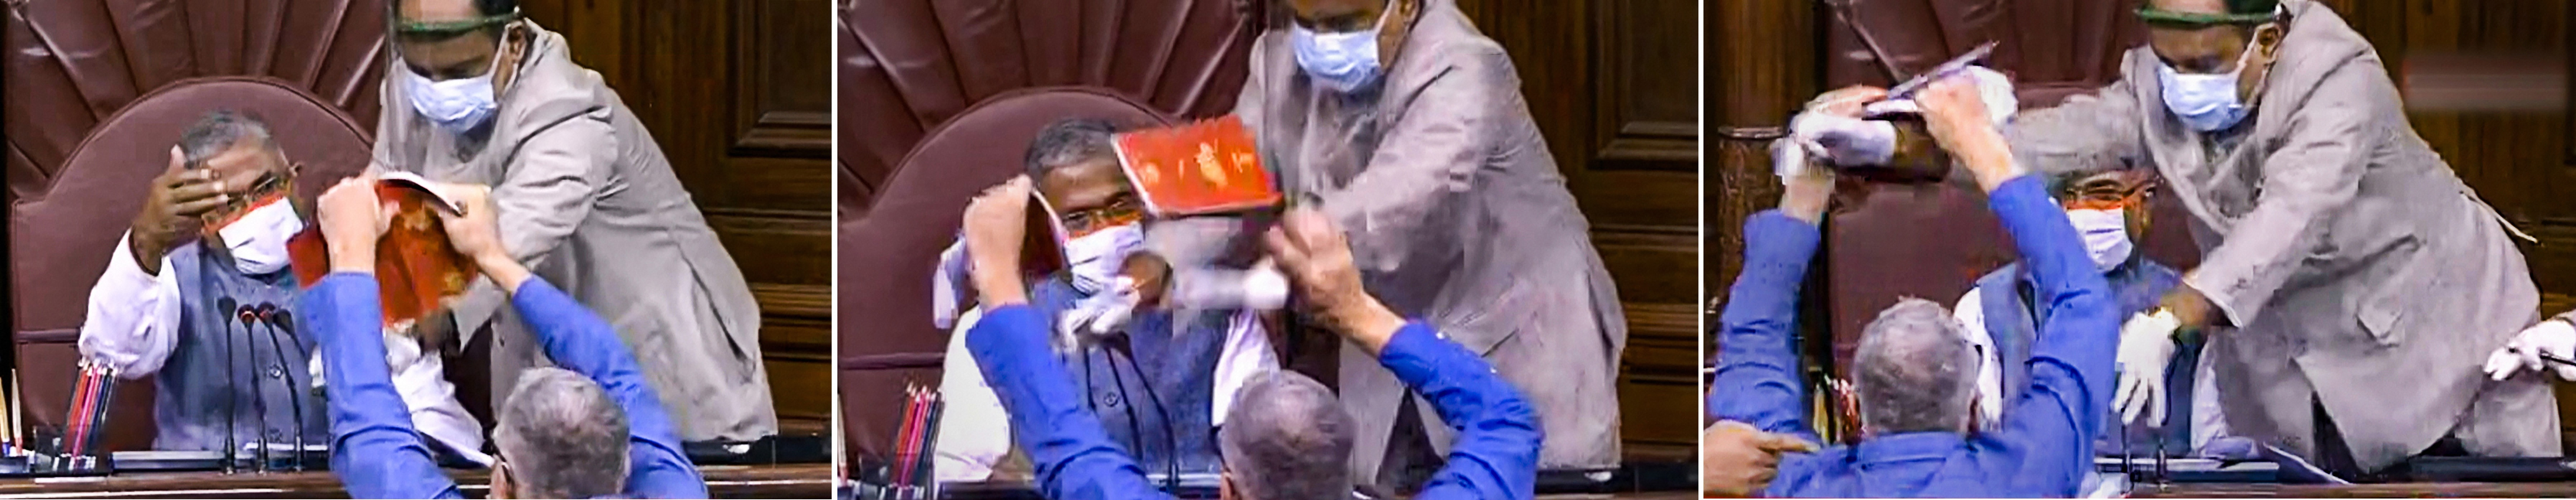 **EDS: COMBO** New Delhi: In this combo image, is seen TMC MP Derek O'Brien attempting to tear the rule book as ruckus erupts in the Rajya Sabha over agriculture related bills, during the ongoing Monsoon Session, at Parliament House in New Delhi, Sunday, Sept. 20, 2020. (RSTV/PTI Photo)(PTI20-09-2020_000147B)